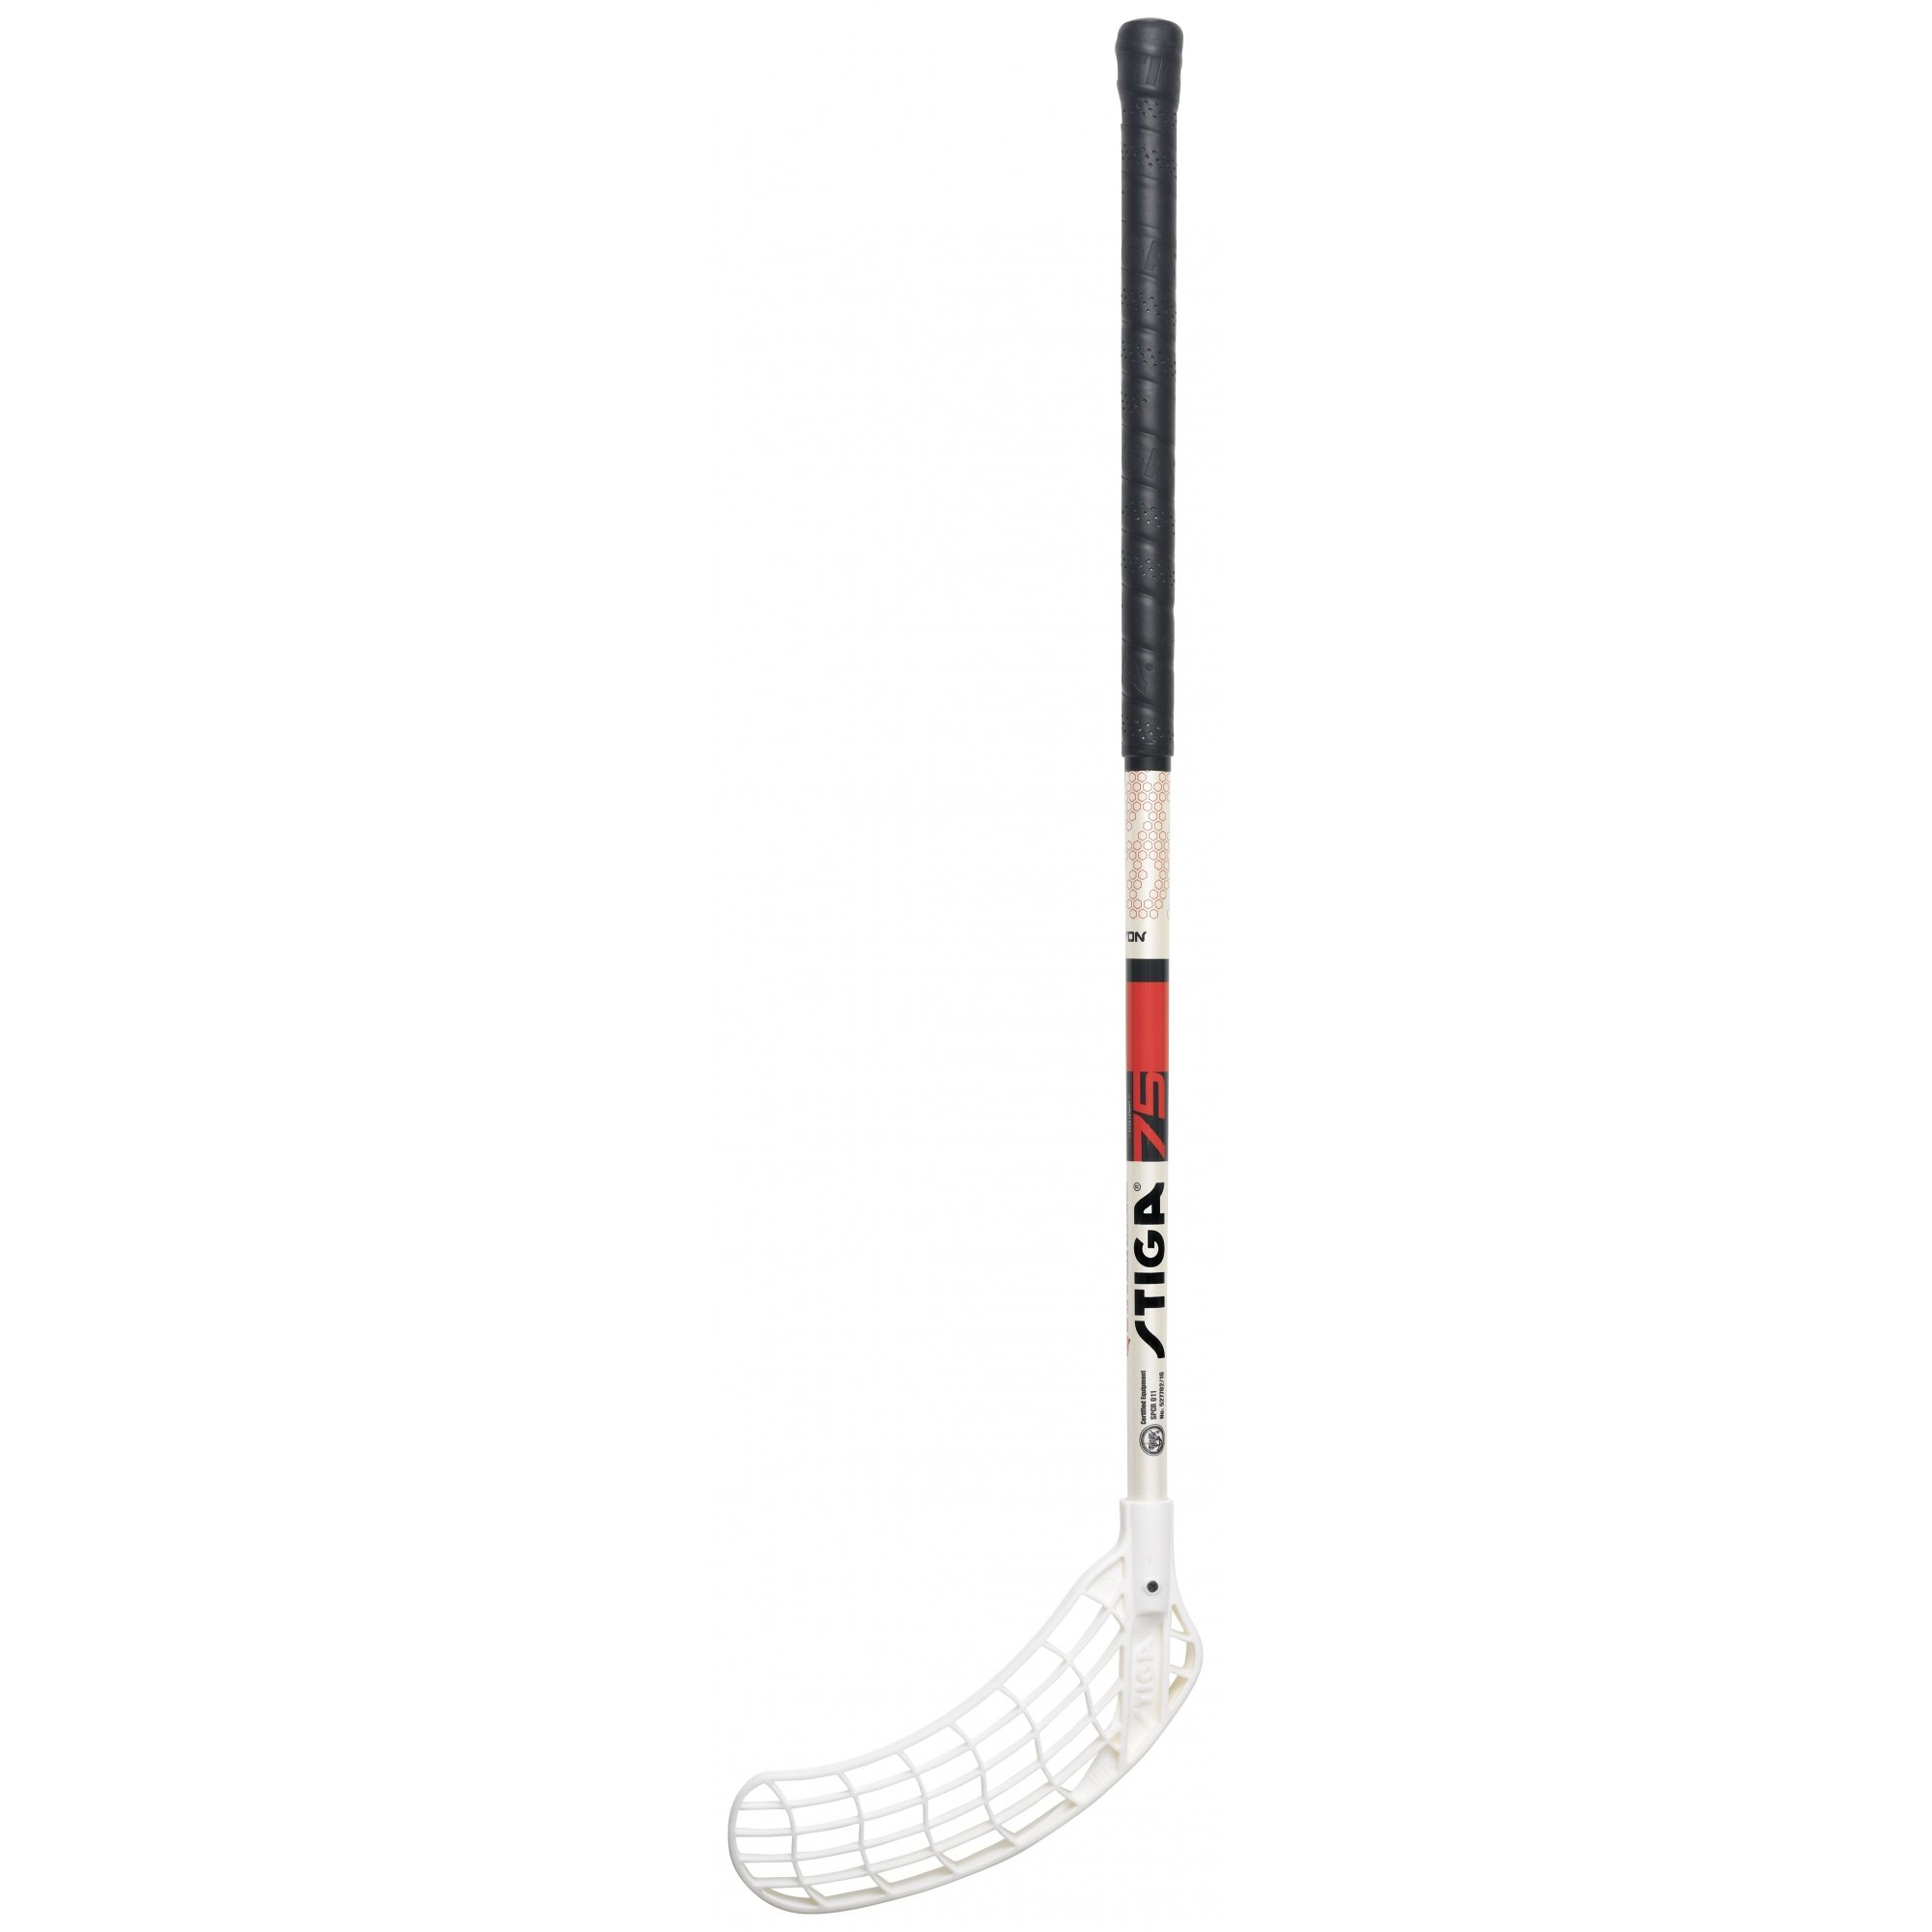 Stiga - Movon Floorball Stick - Left (75 cm) (79-1650-75)